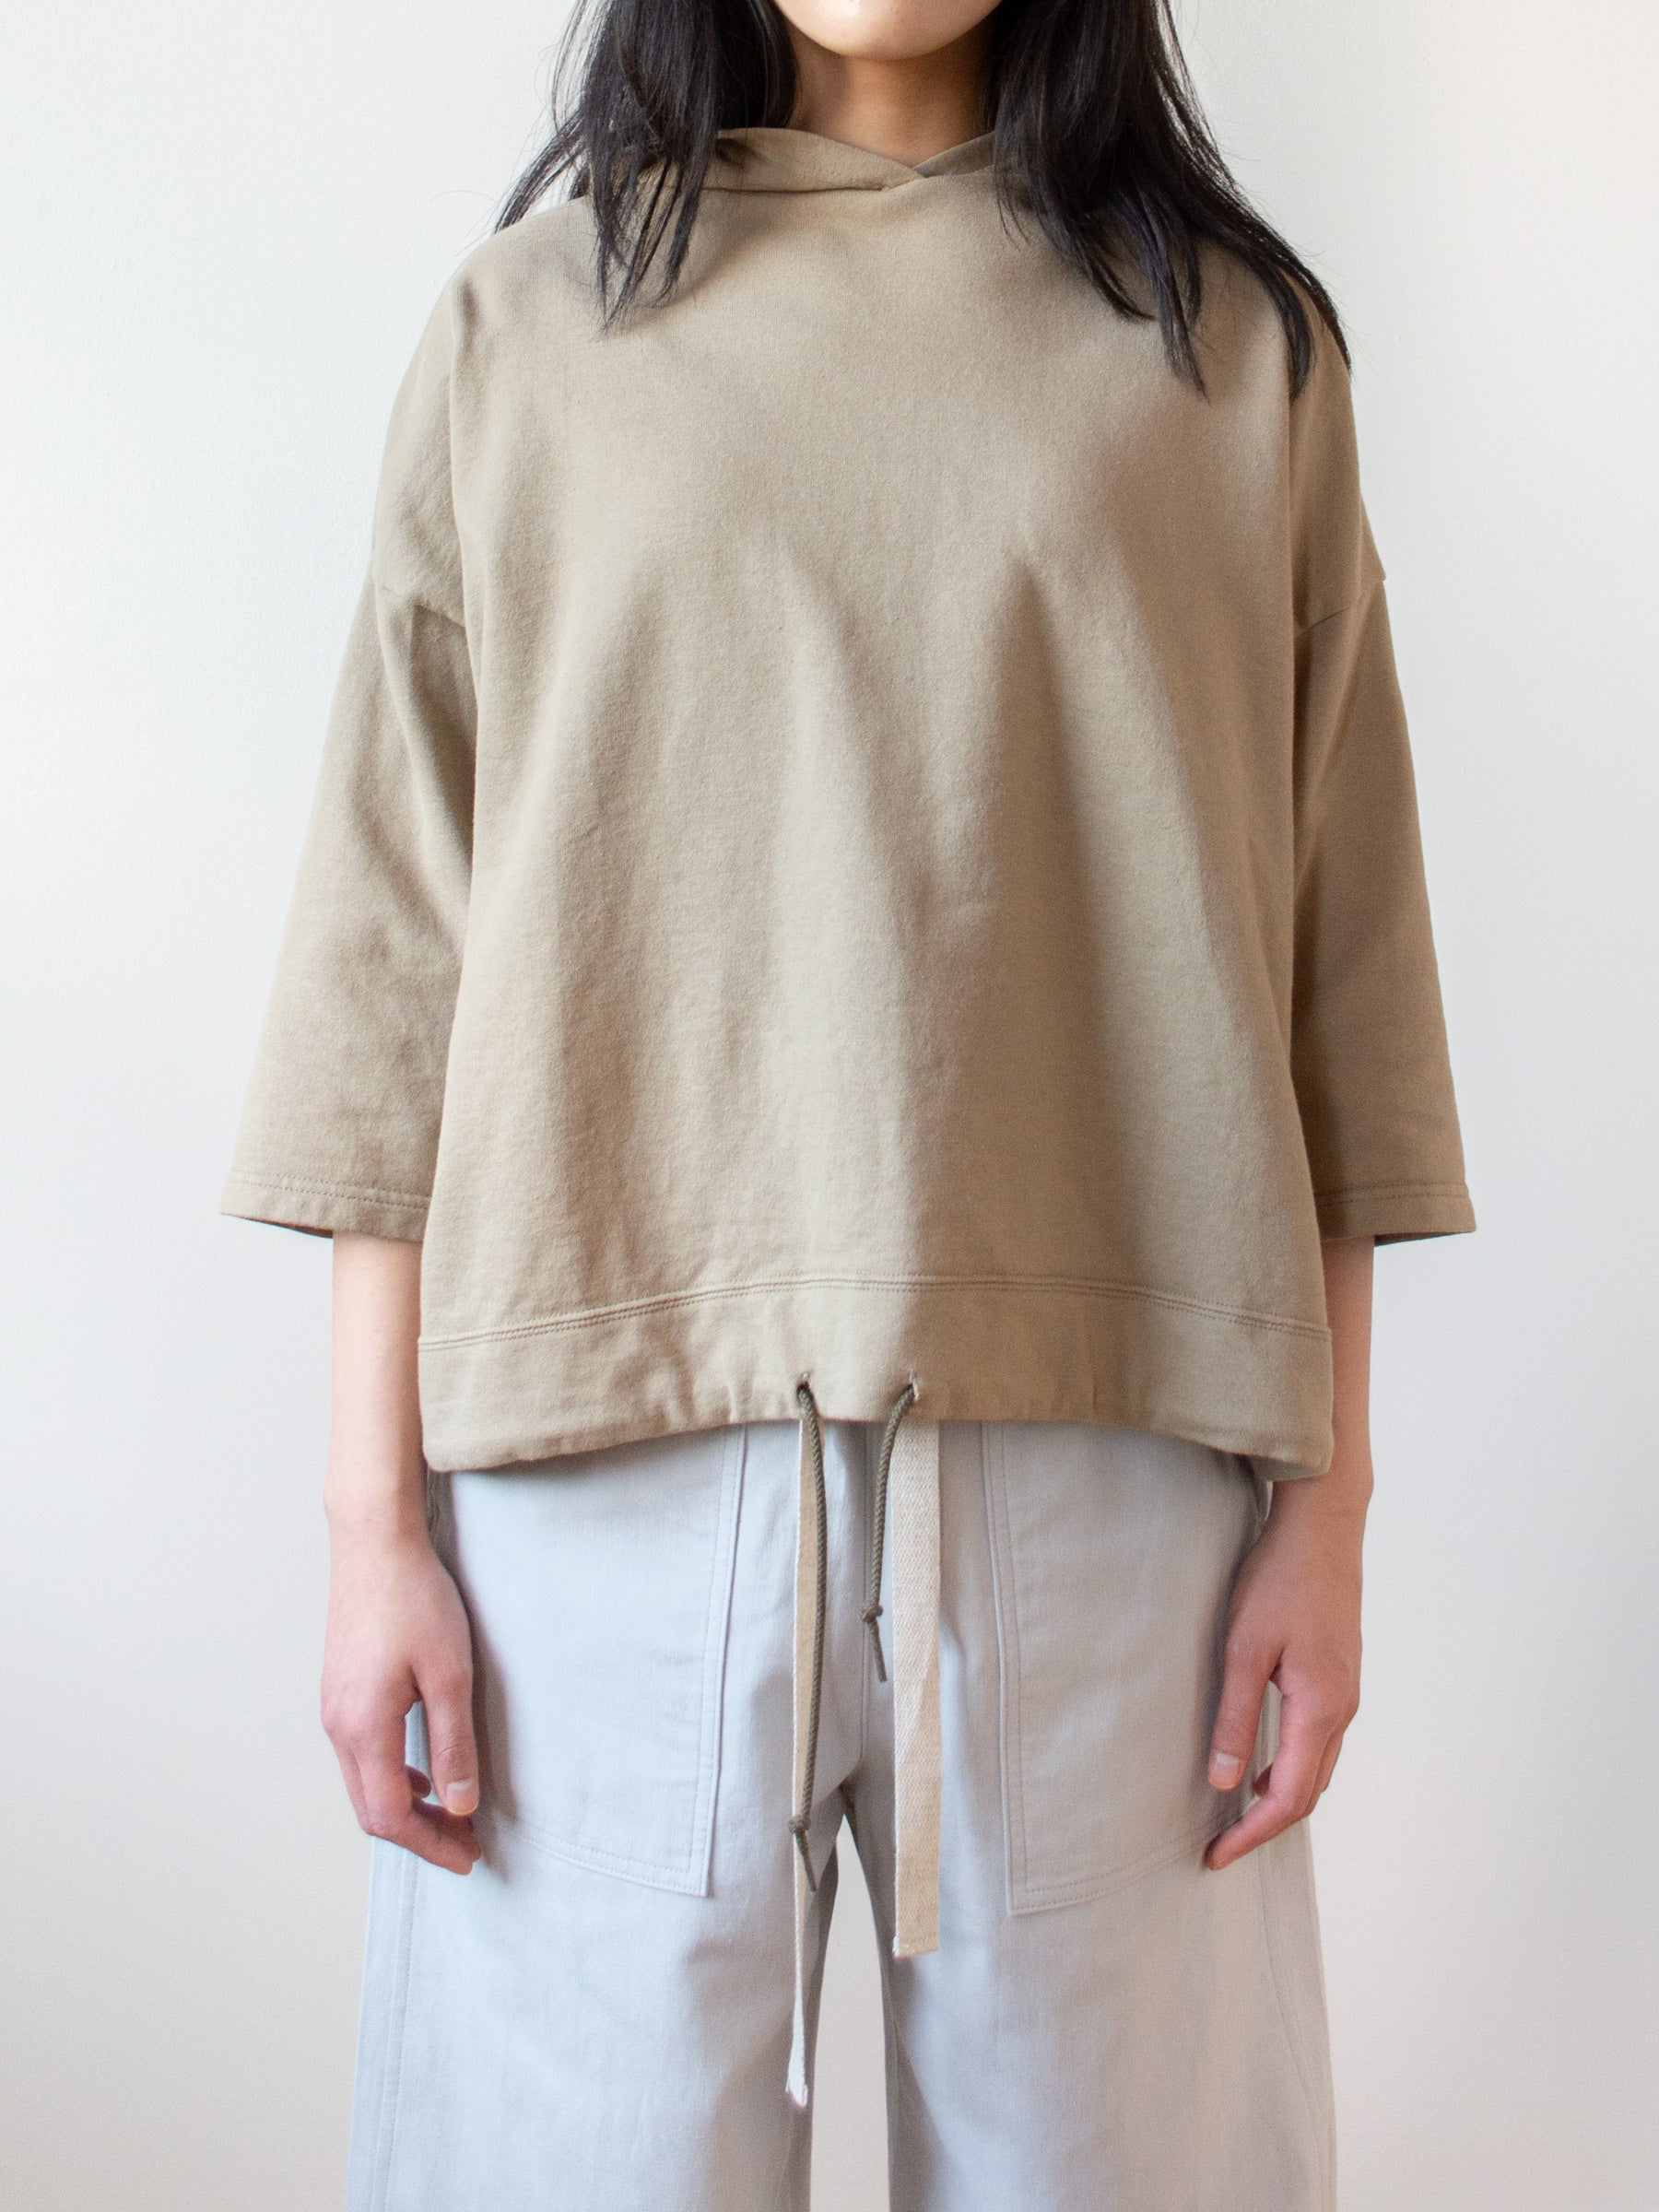 Cotton Hooded Sweatshirt - Beige